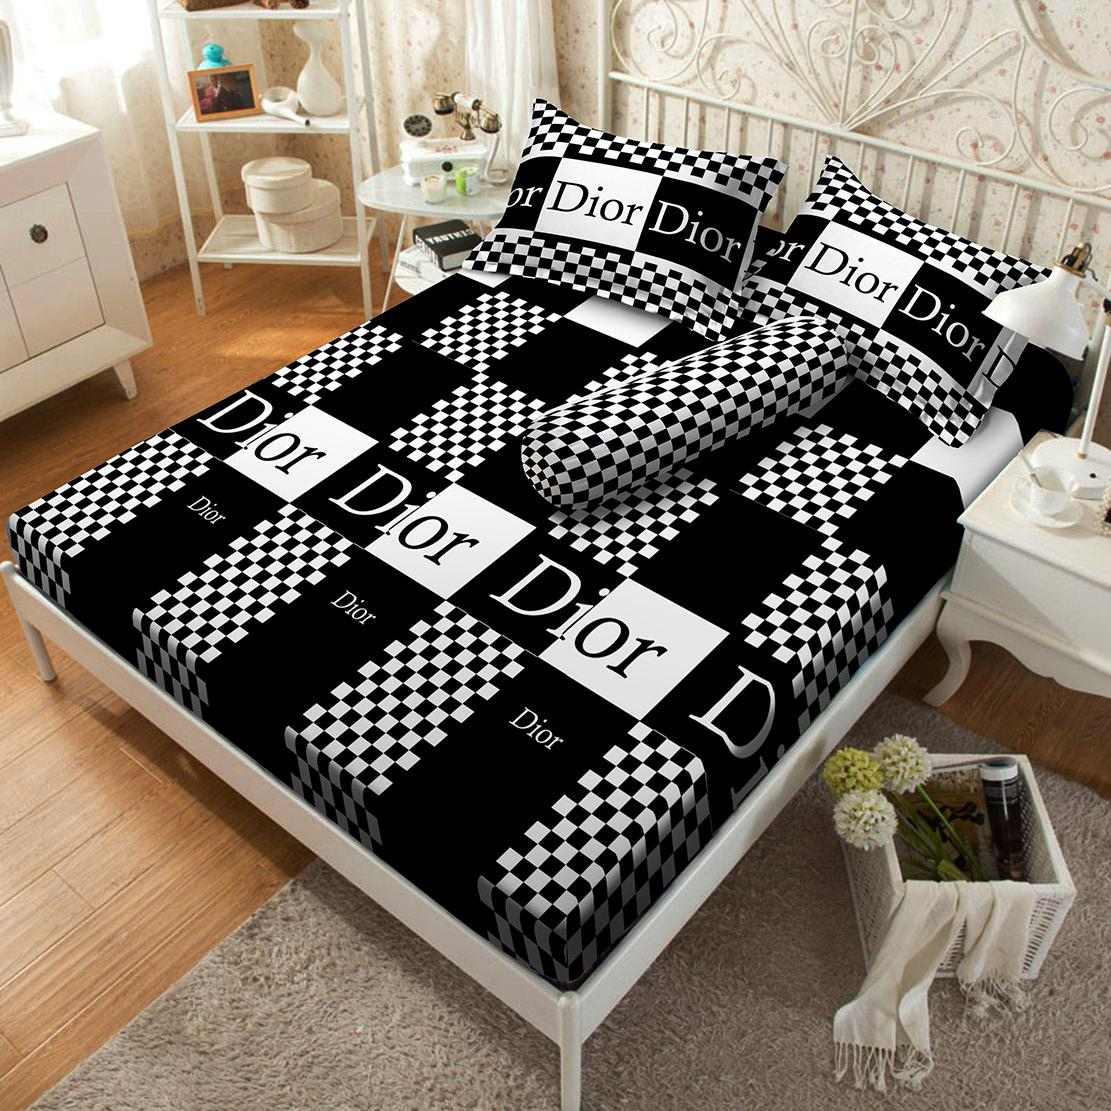 Kelebihan Sprei Saputra Single 120 X 200 Football Edition Manchester Kintakun 2in1 Dluxe United Flag Dior